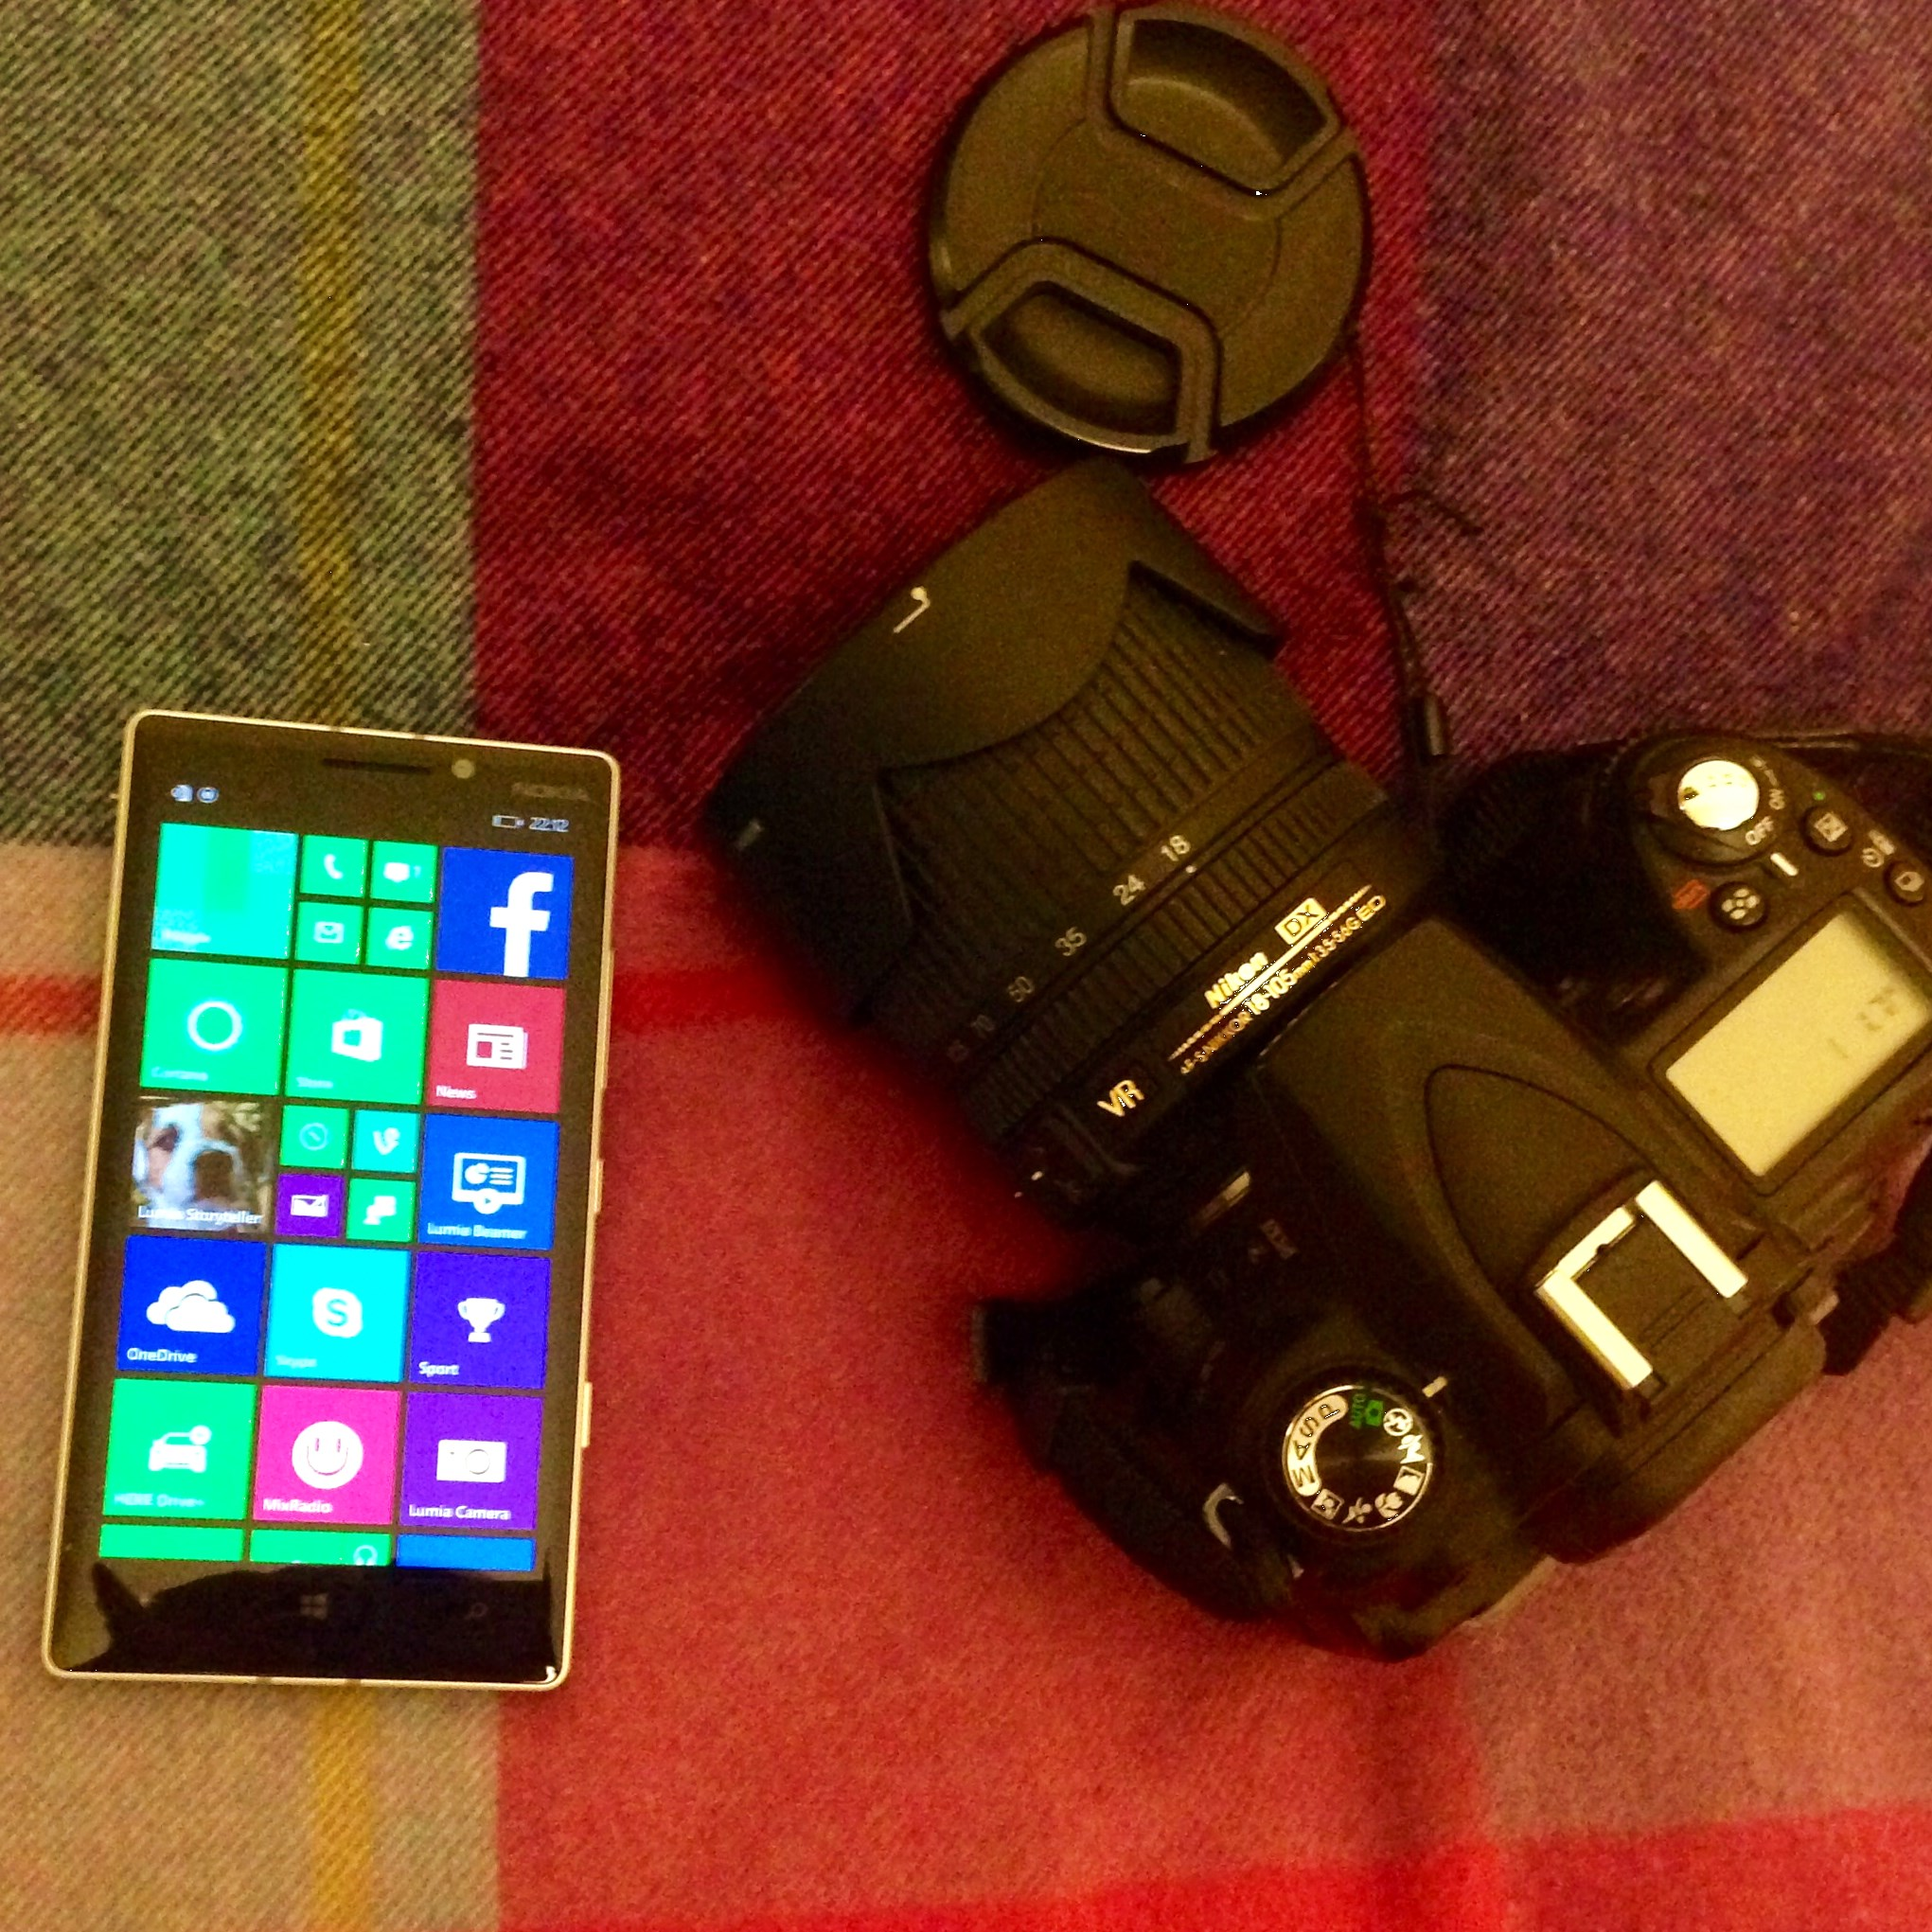 Blogging-on-the-go: DSLR v Camera Phone